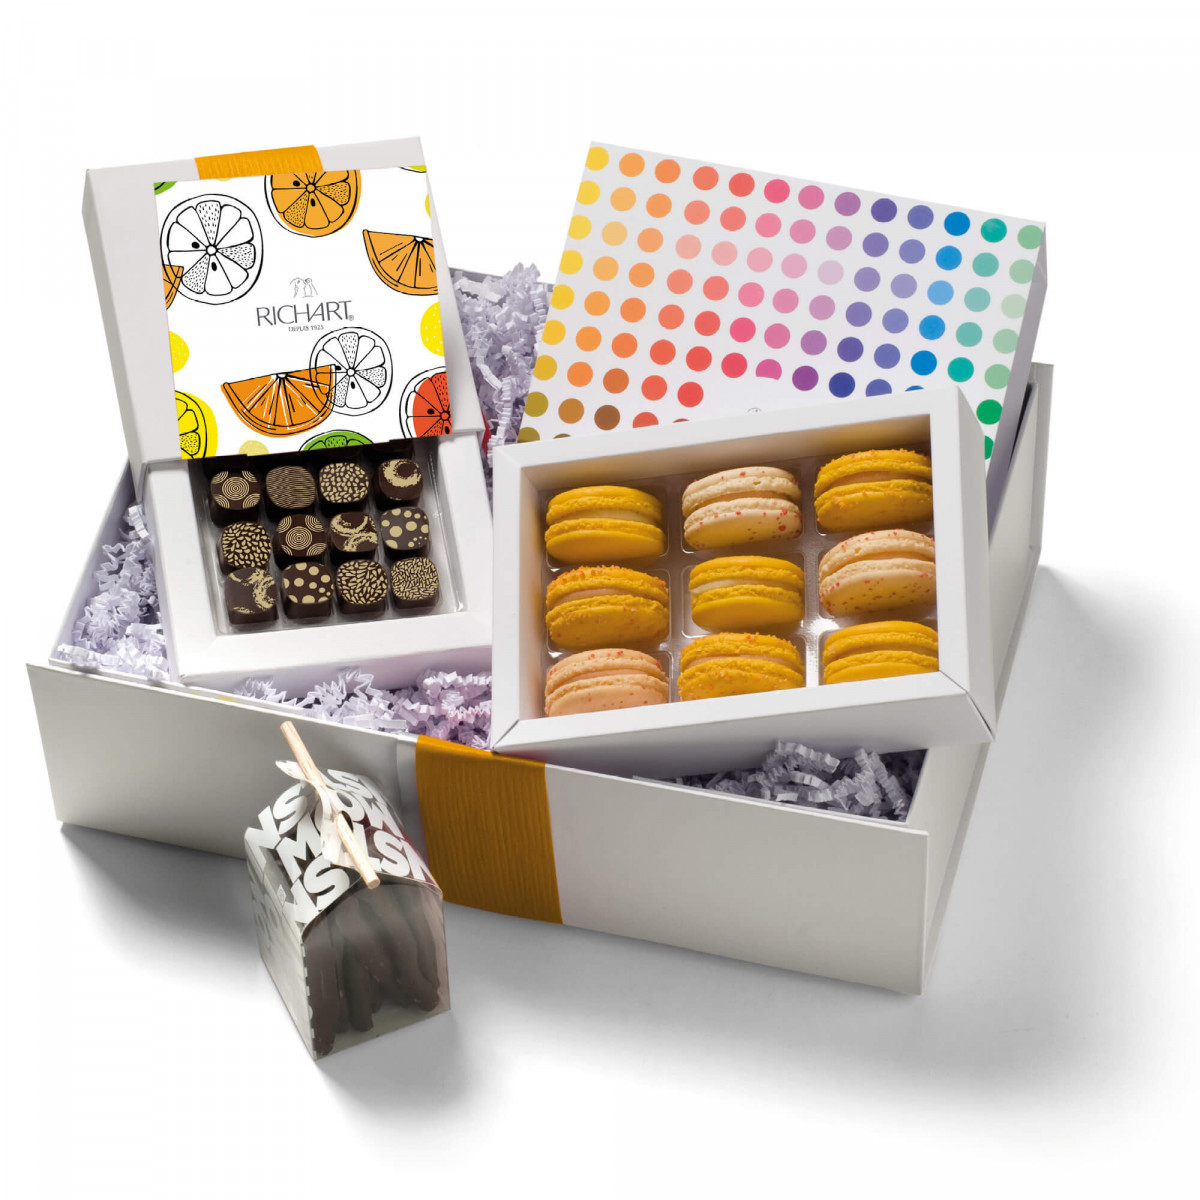 In the kingdom of the Citrus Chocolates and French macarons Gift Basket